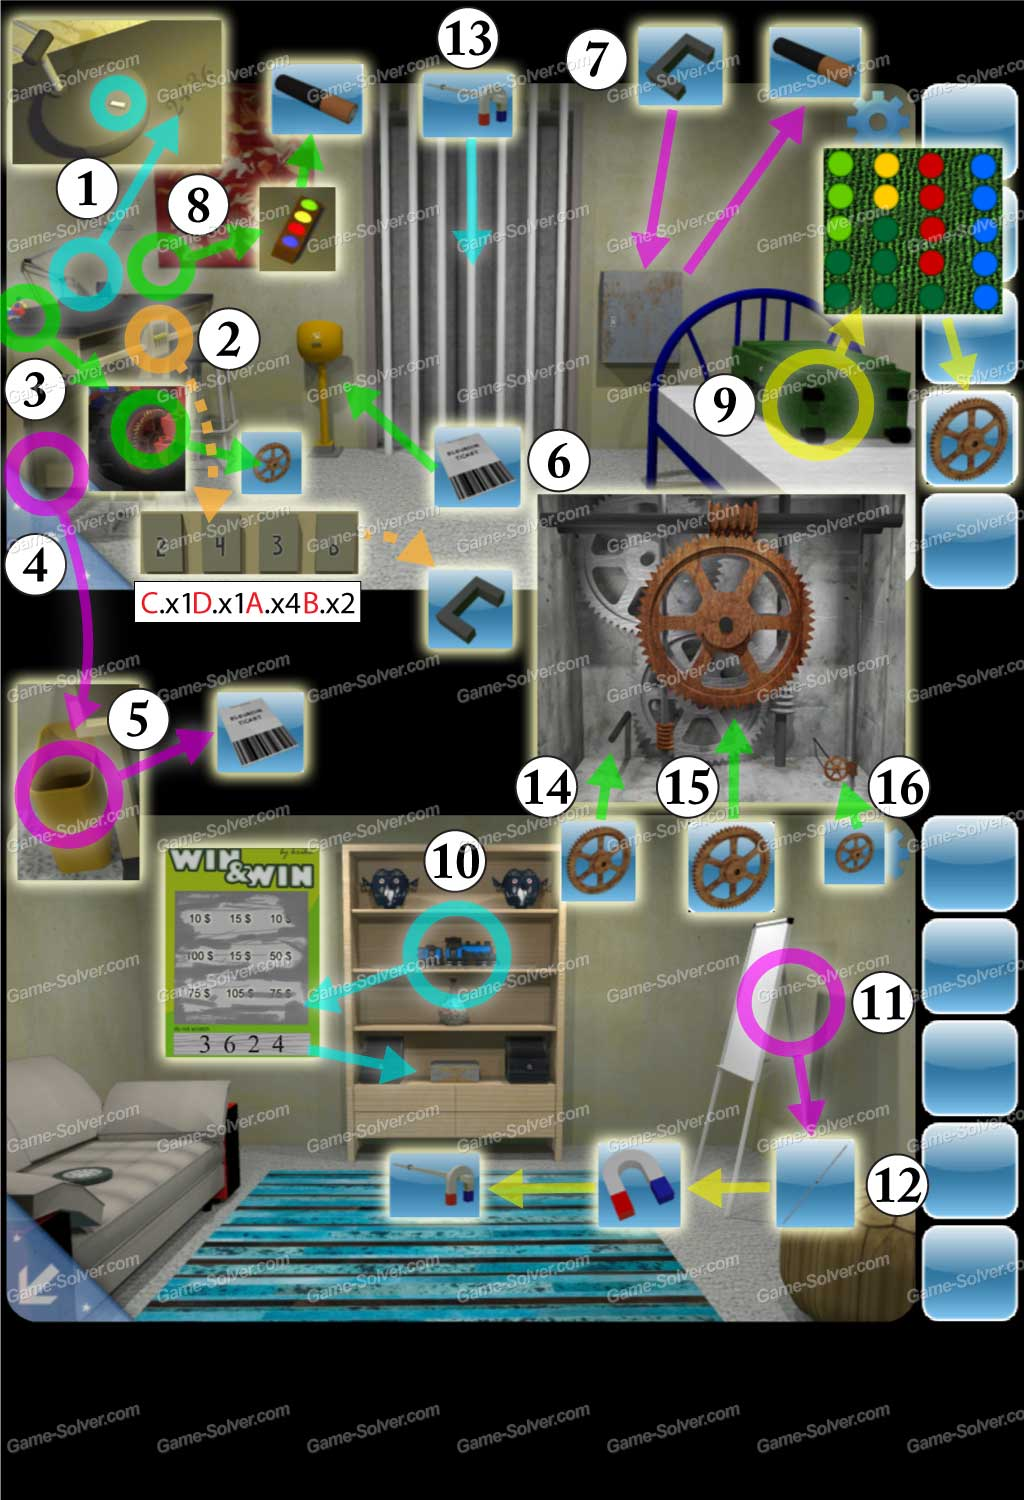 Escape from the room with the device walkthrough solution cheats - Can You Escape 2 Level 8